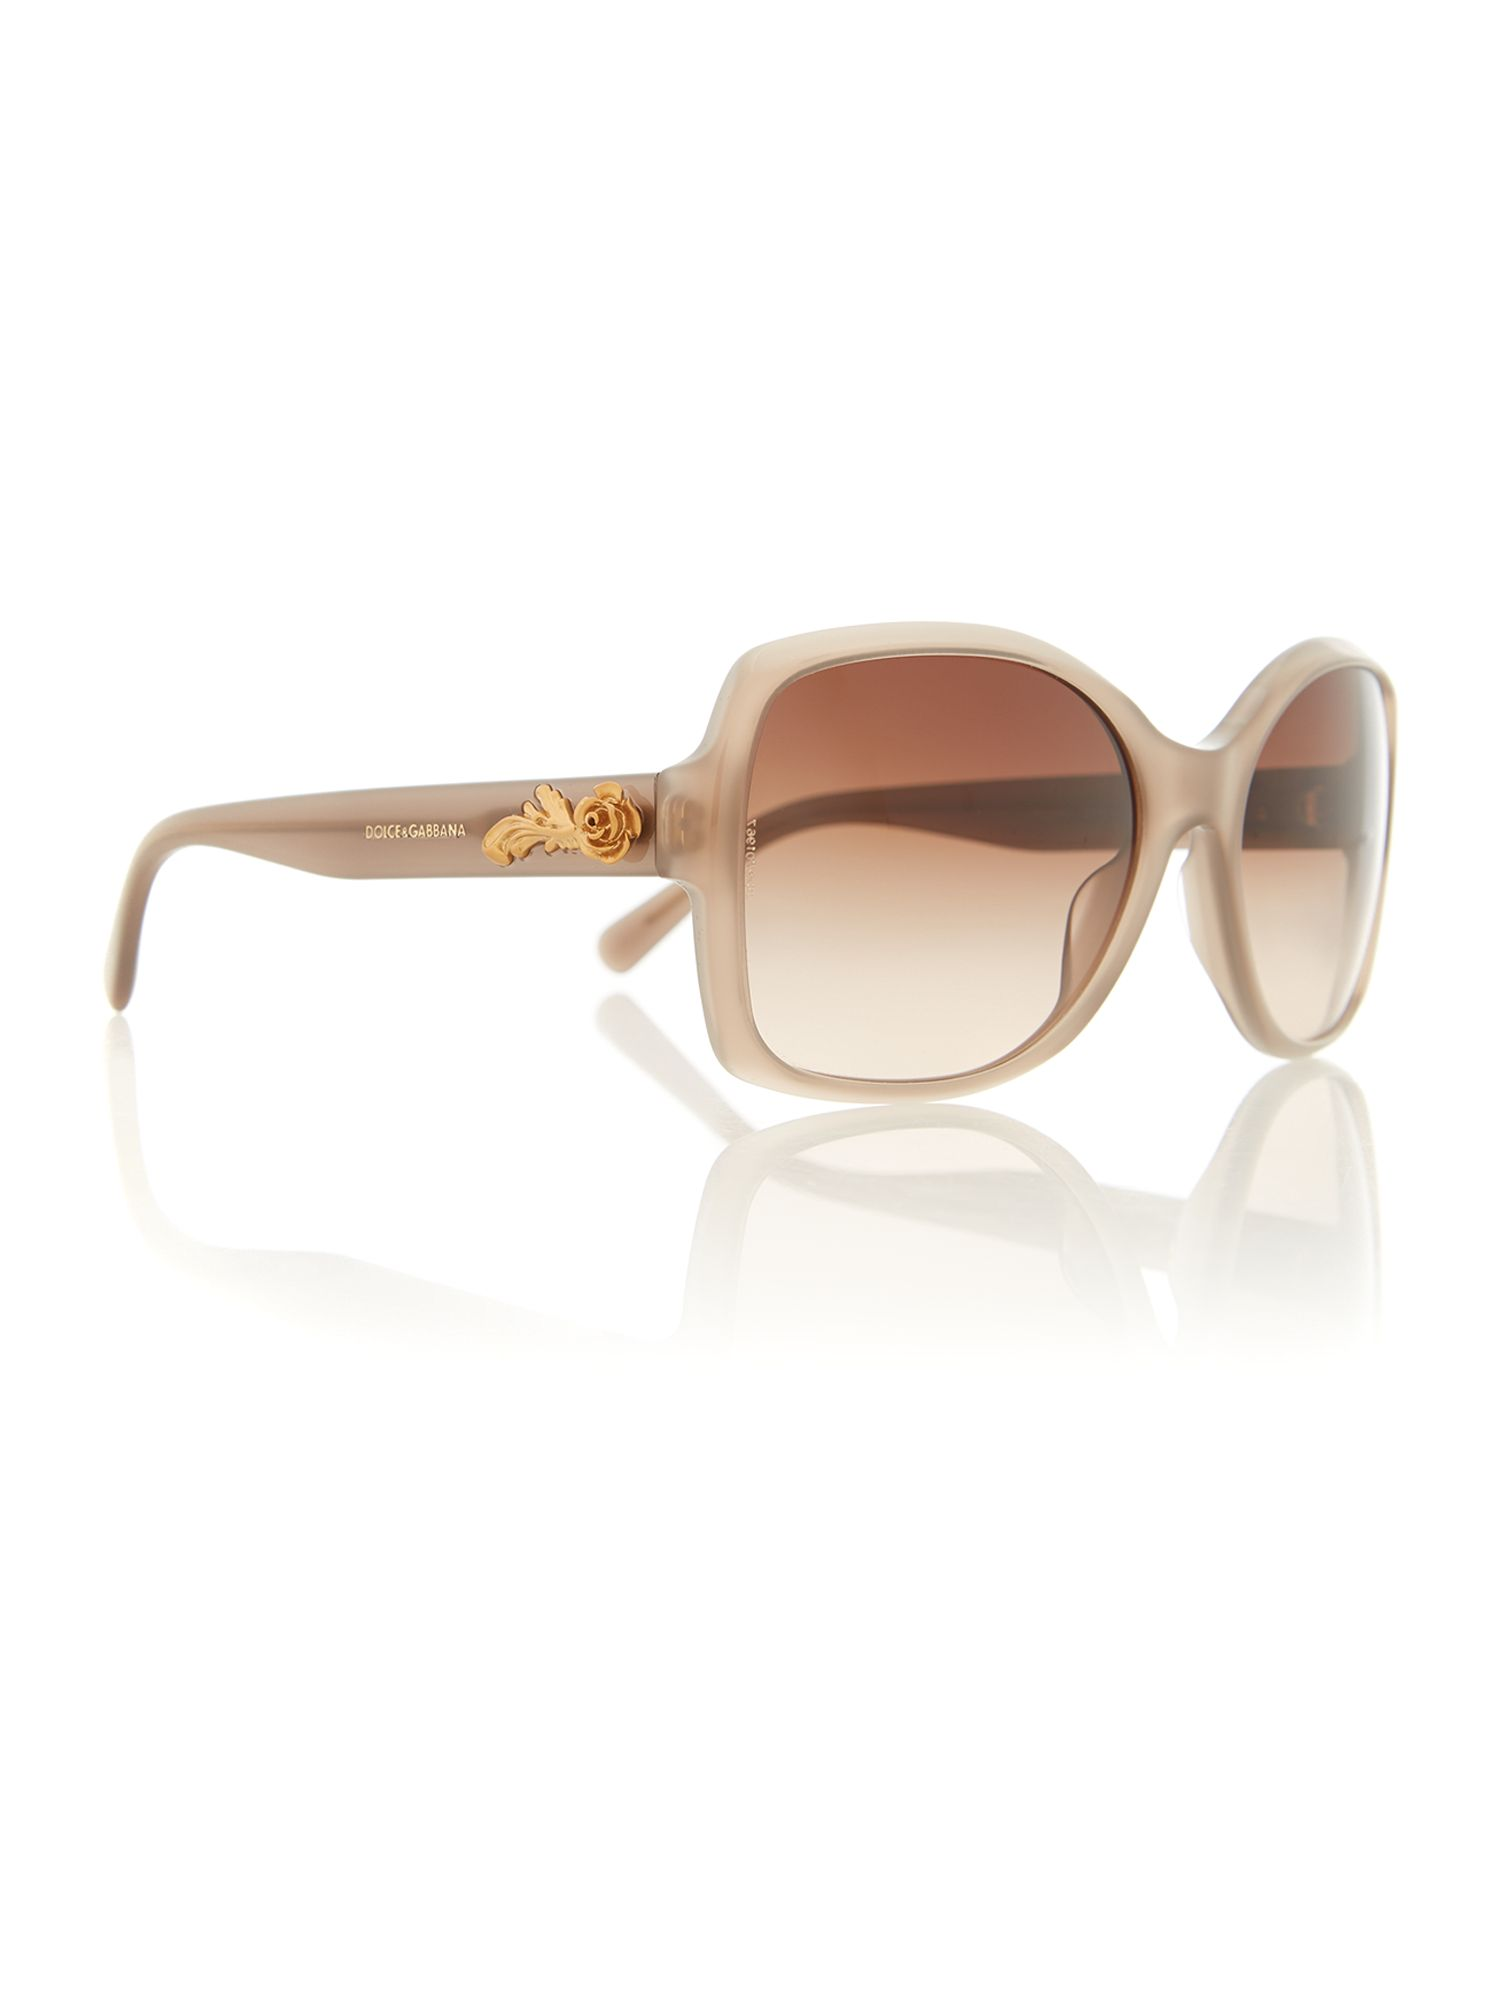 Ladies 0dg4168 sunglasses